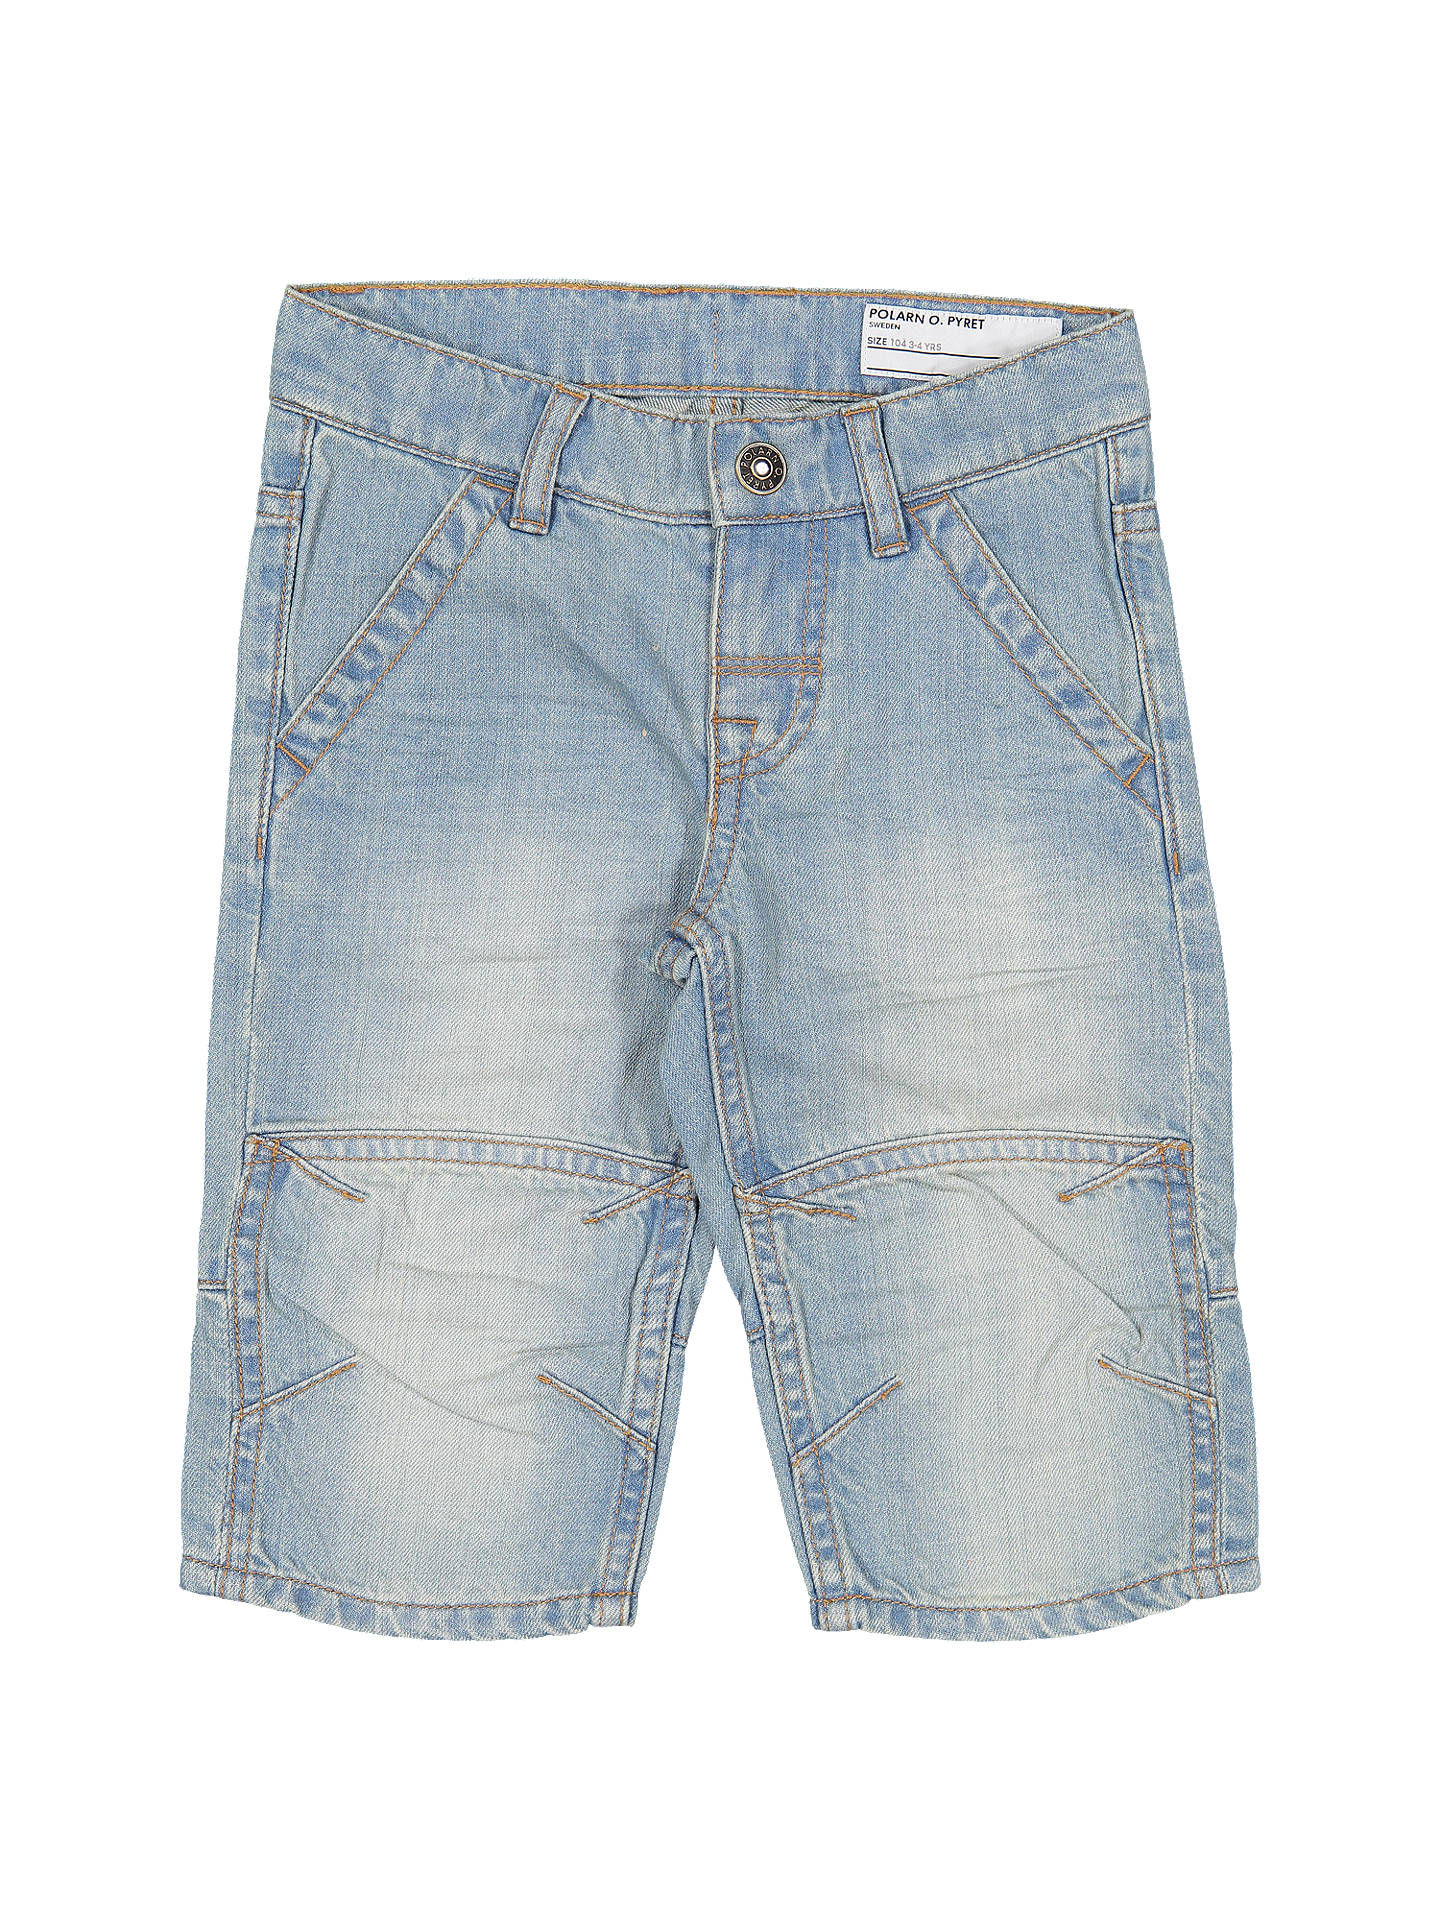 0018f701f623 Buy Polarn O. Pyret Children's Denim Shorts, Blue, 2-3 years Online ...